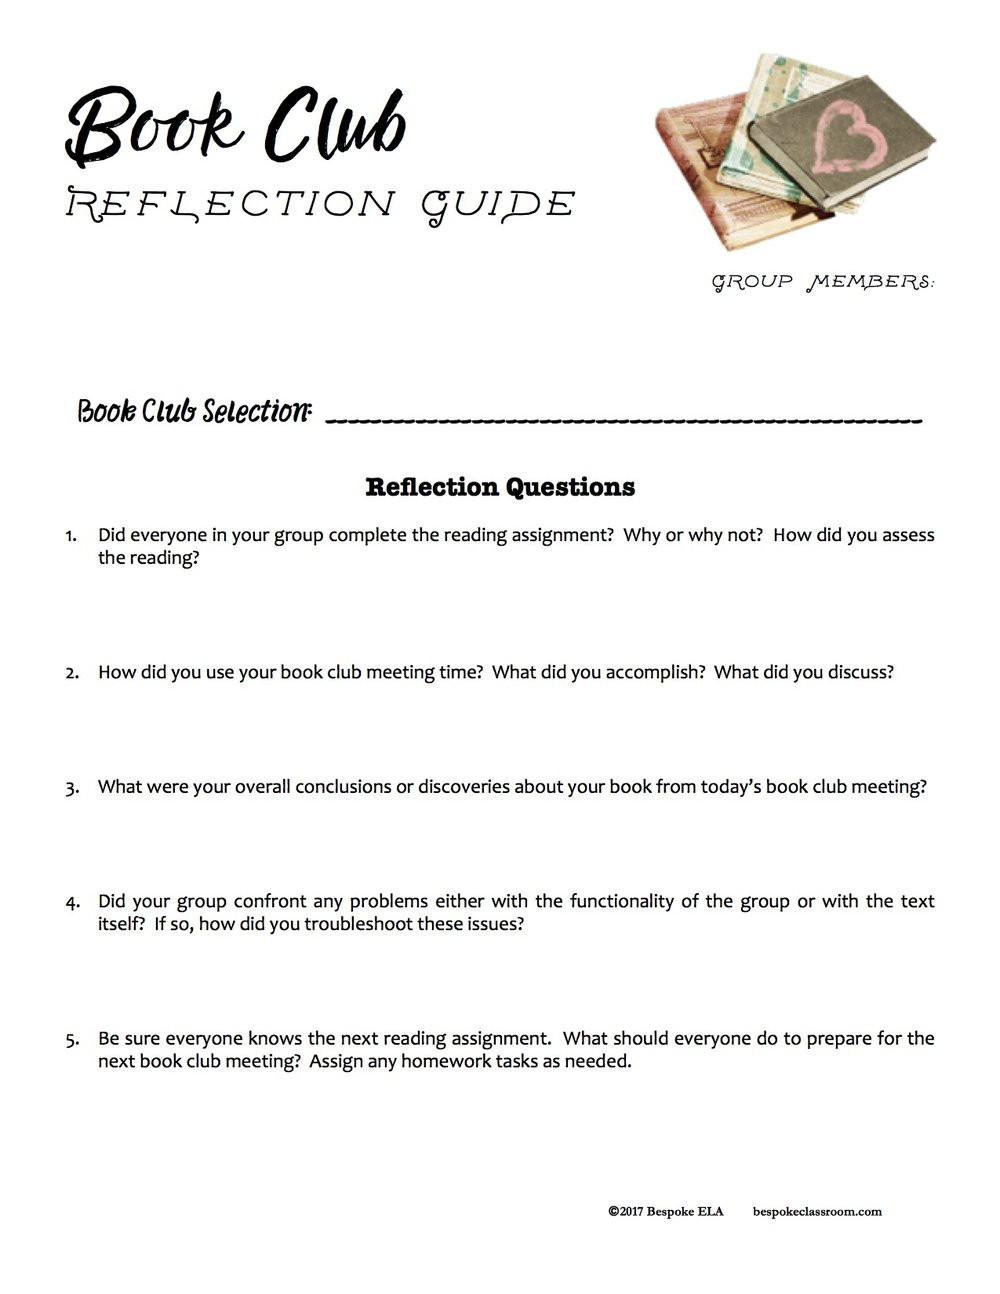 Literary Elements Worksheets High School Setting Up and assessing Book Club In Middle School and High